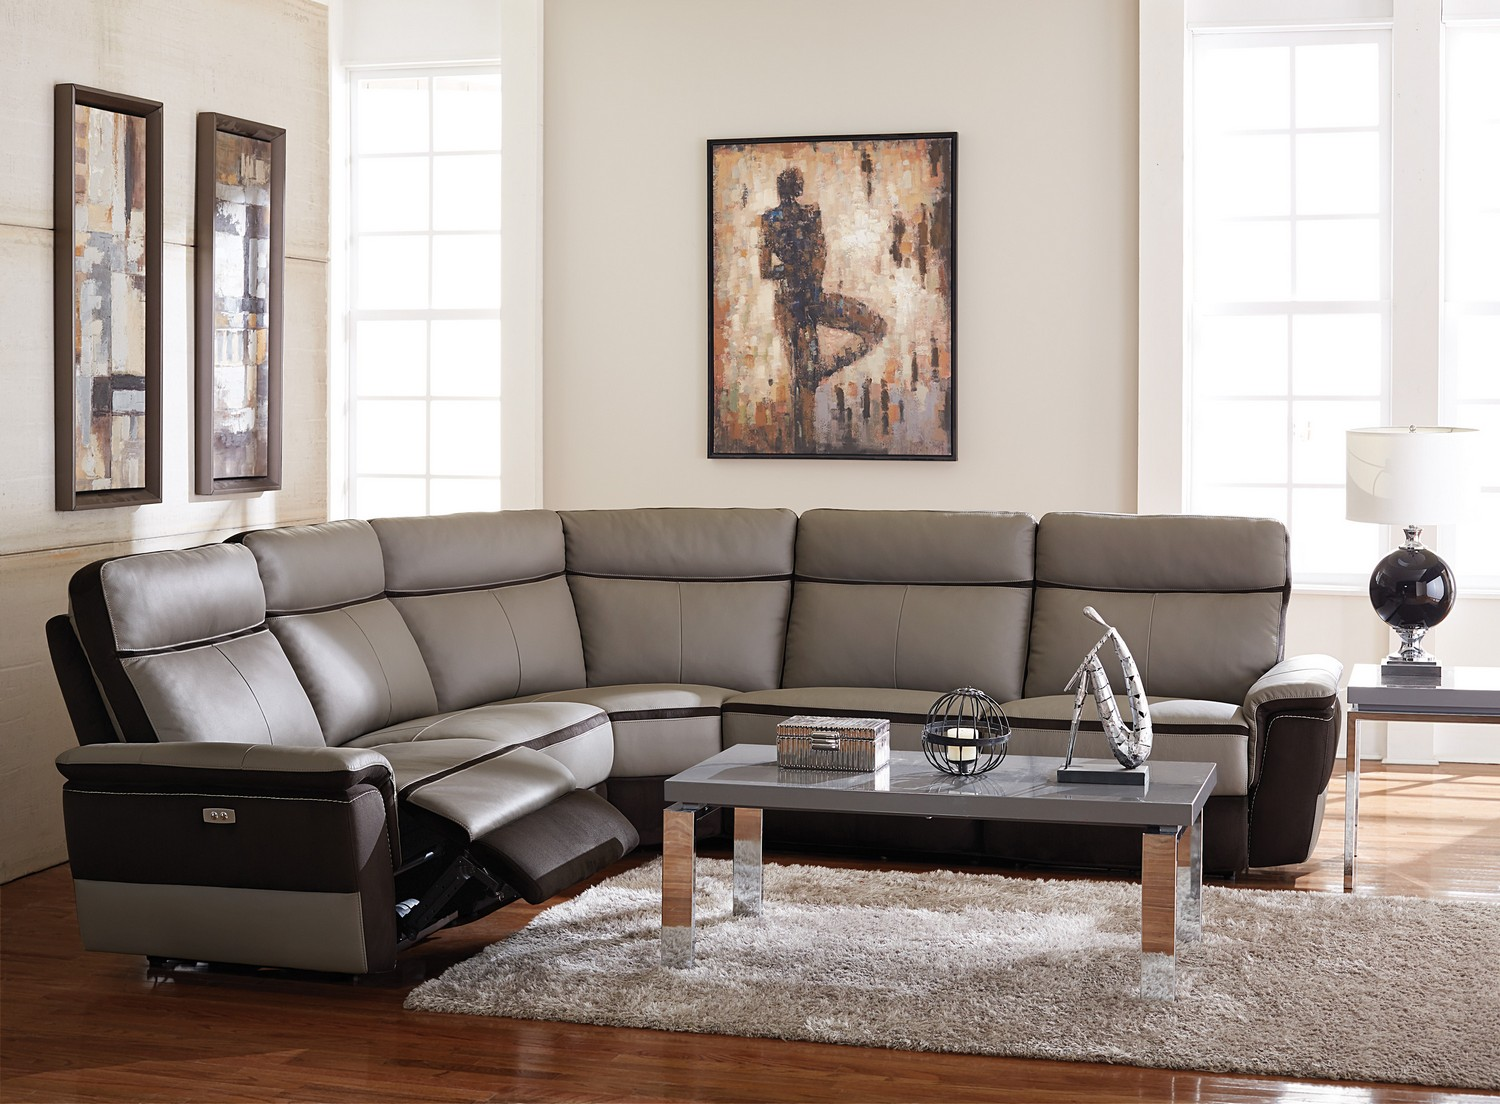 homelegance laertes power reclining sectional sofa set top grain leather fabric taupe grey. Black Bedroom Furniture Sets. Home Design Ideas